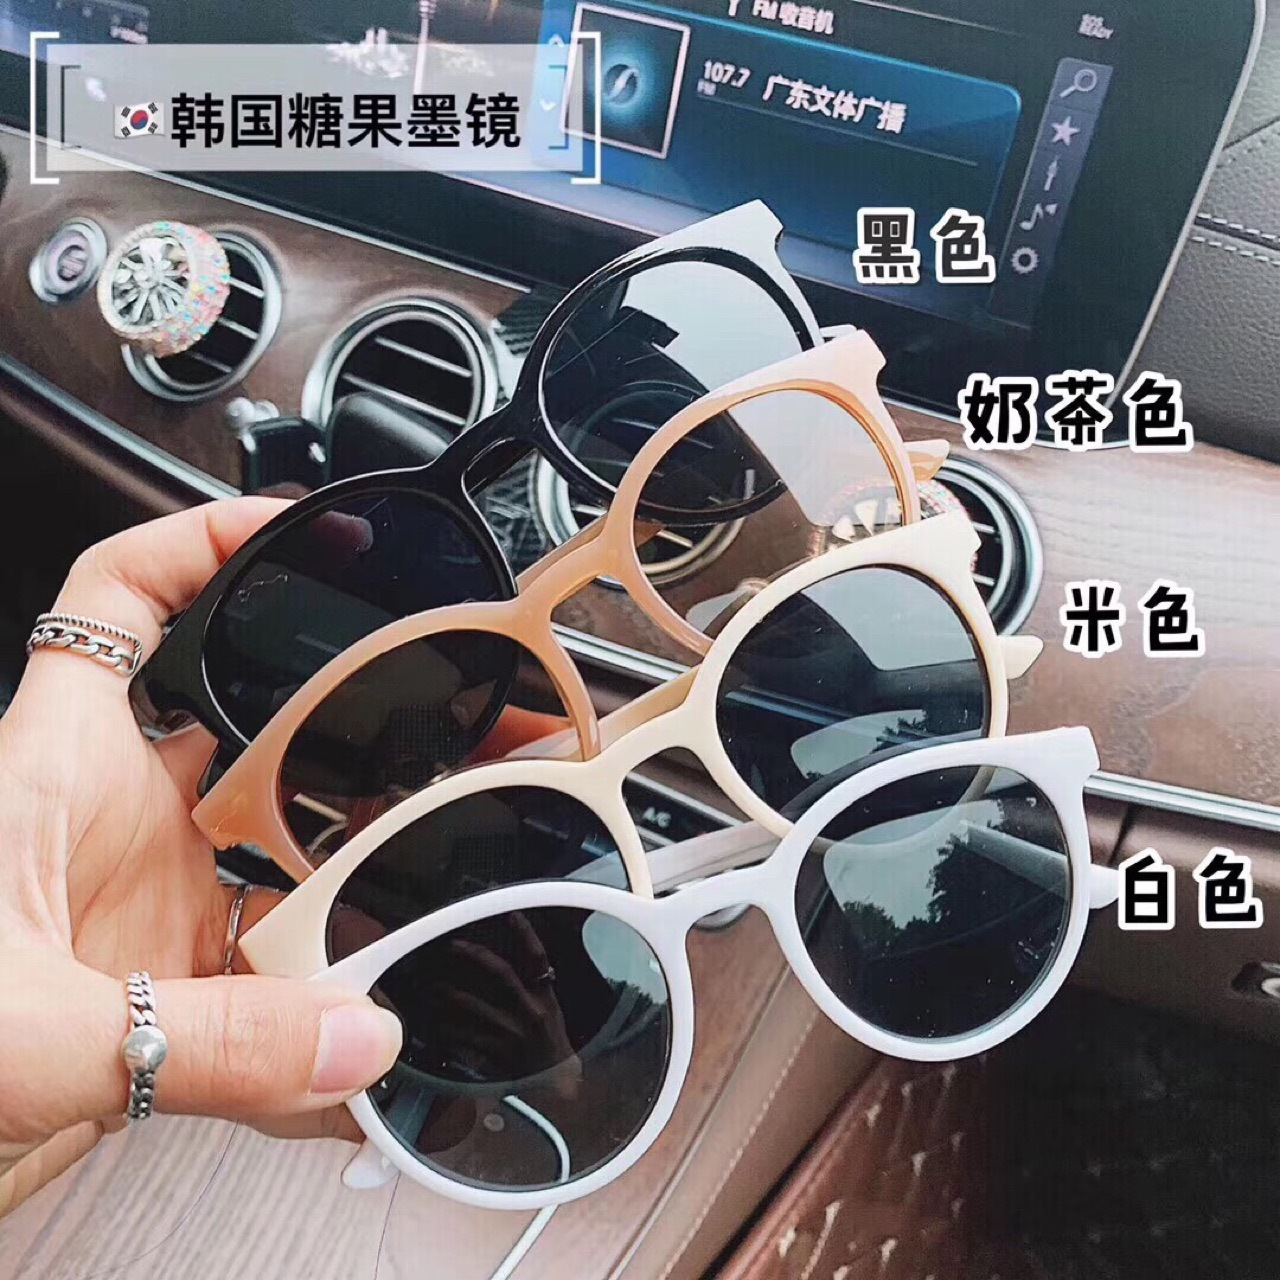 Retro Classic Oversized Round Polarized Sunglasses for Men Women UV400 Frame Black lens Eyewear Driving SunGlasses Female oculos in Women 39 s Sunglasses from Apparel Accessories